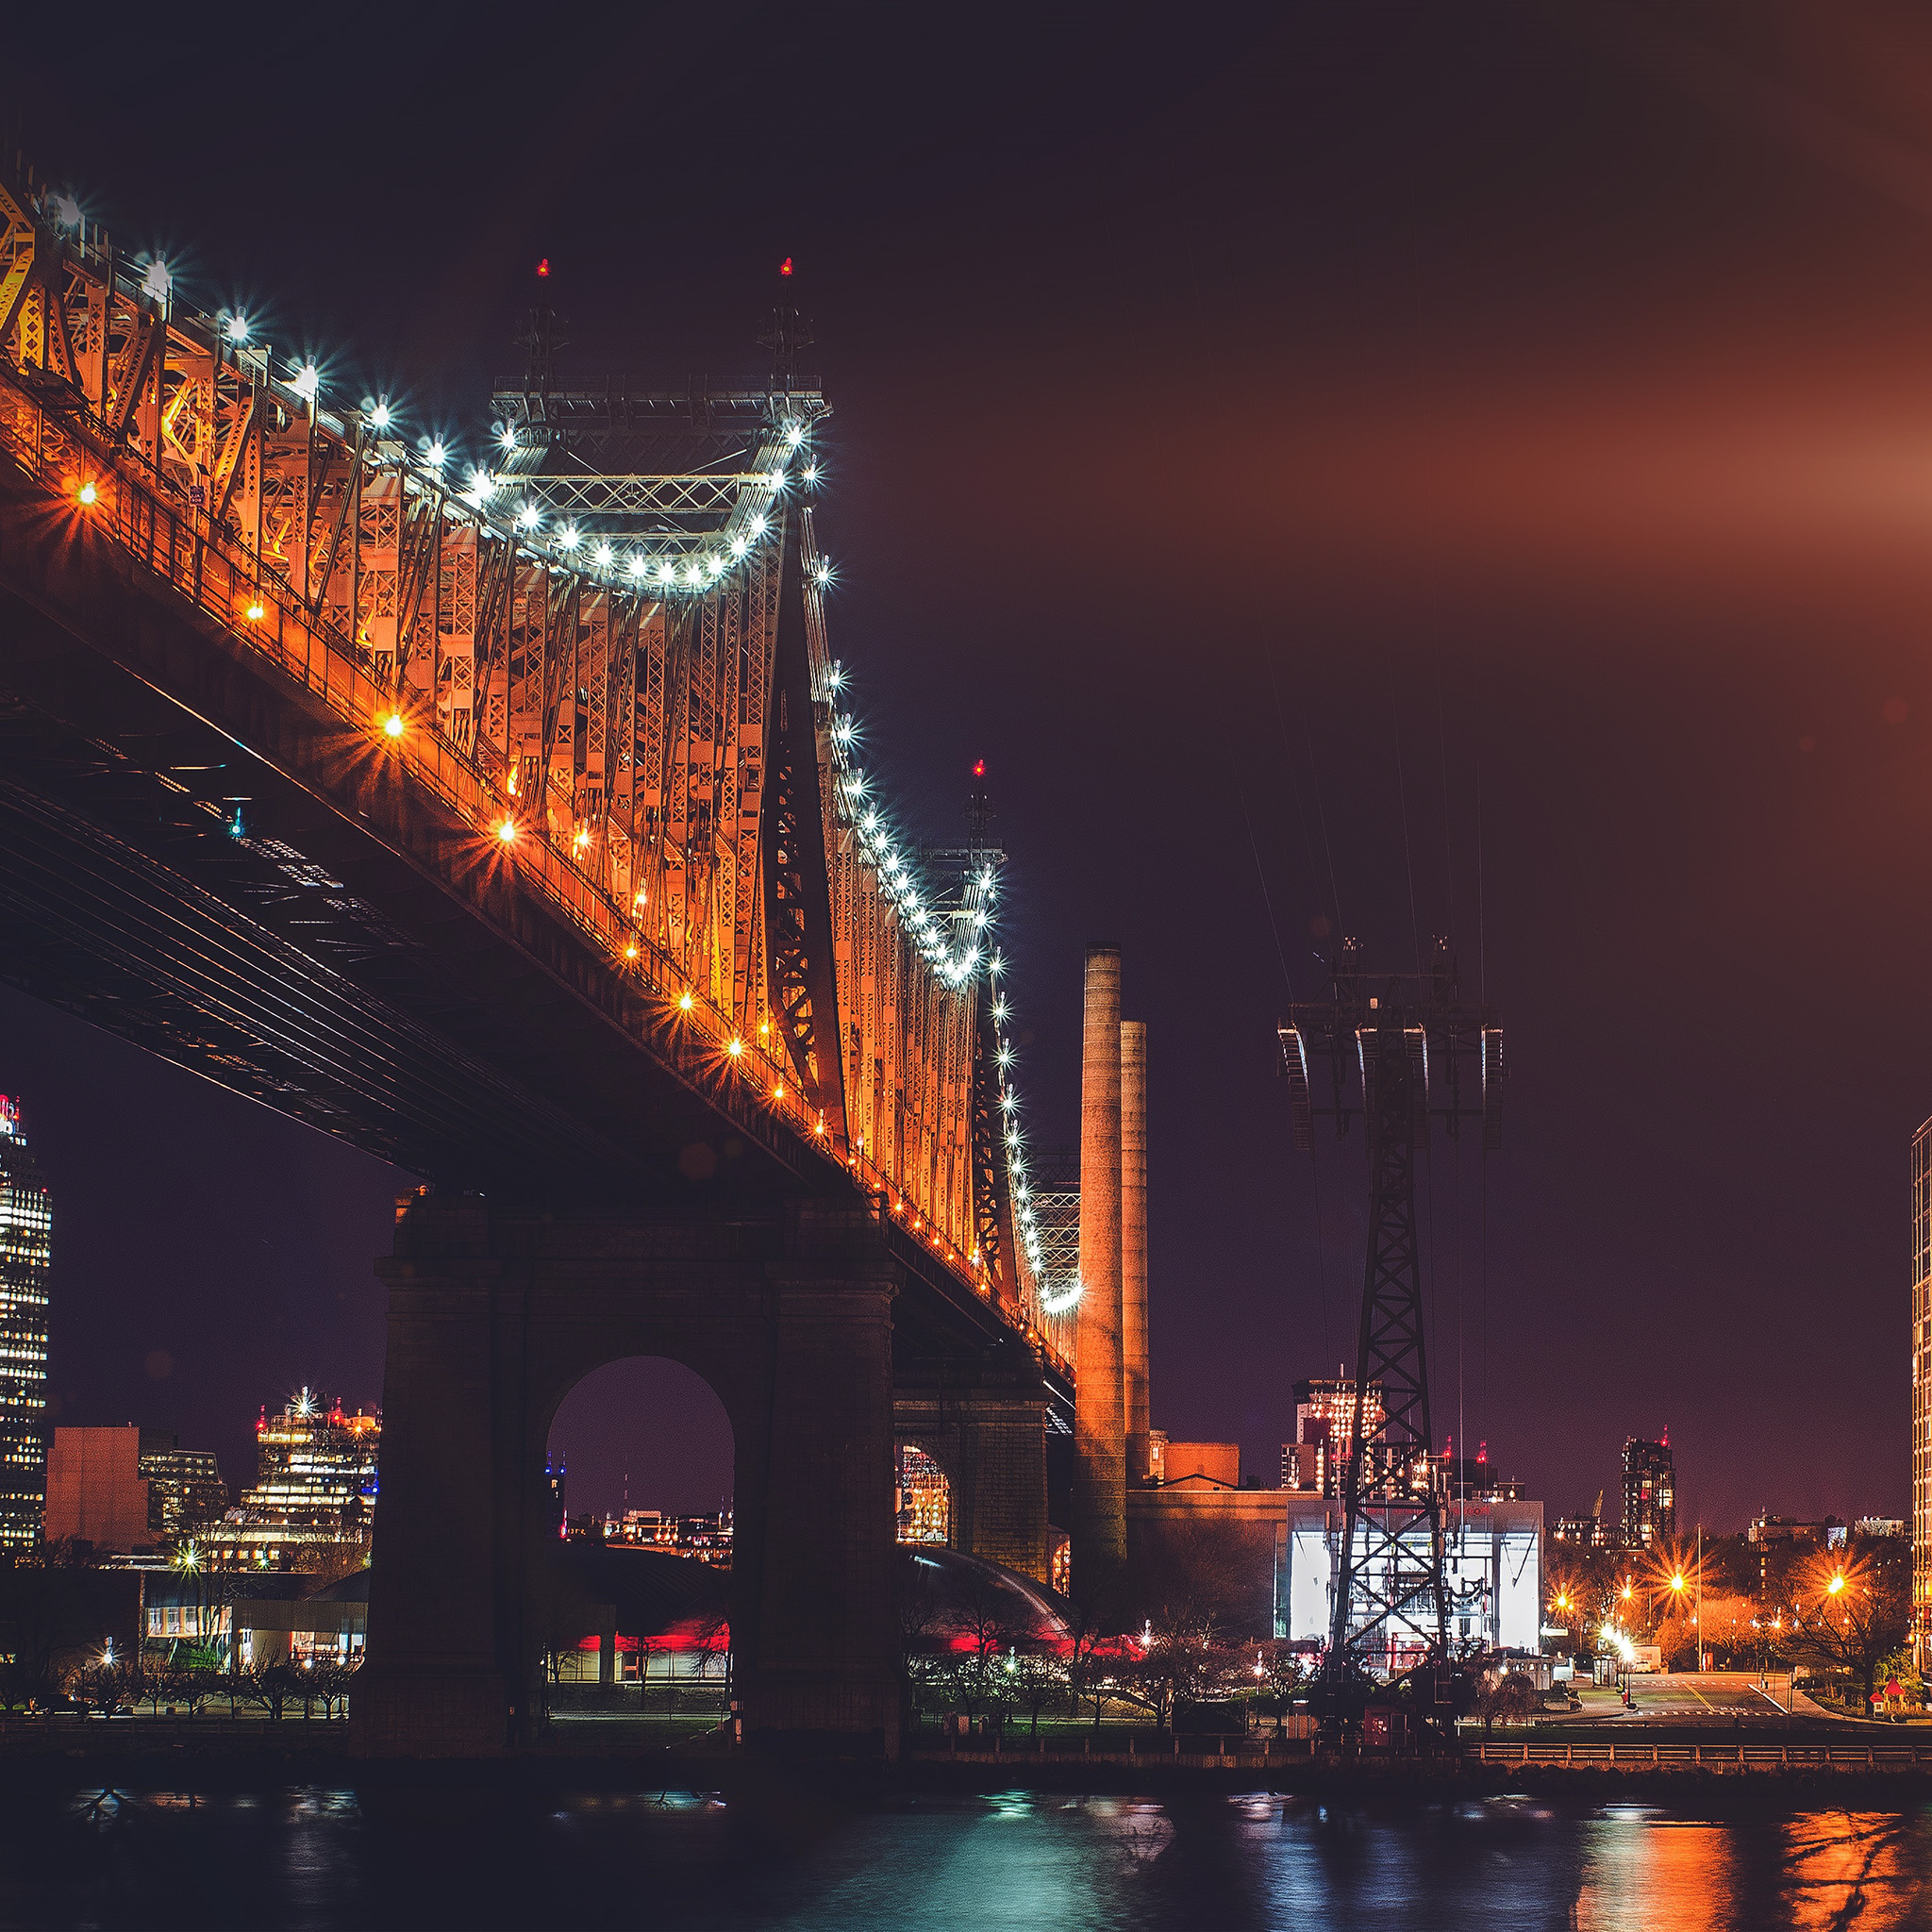 Nf75-bridge-night-river-city-lights-orange-flare-wallpaper